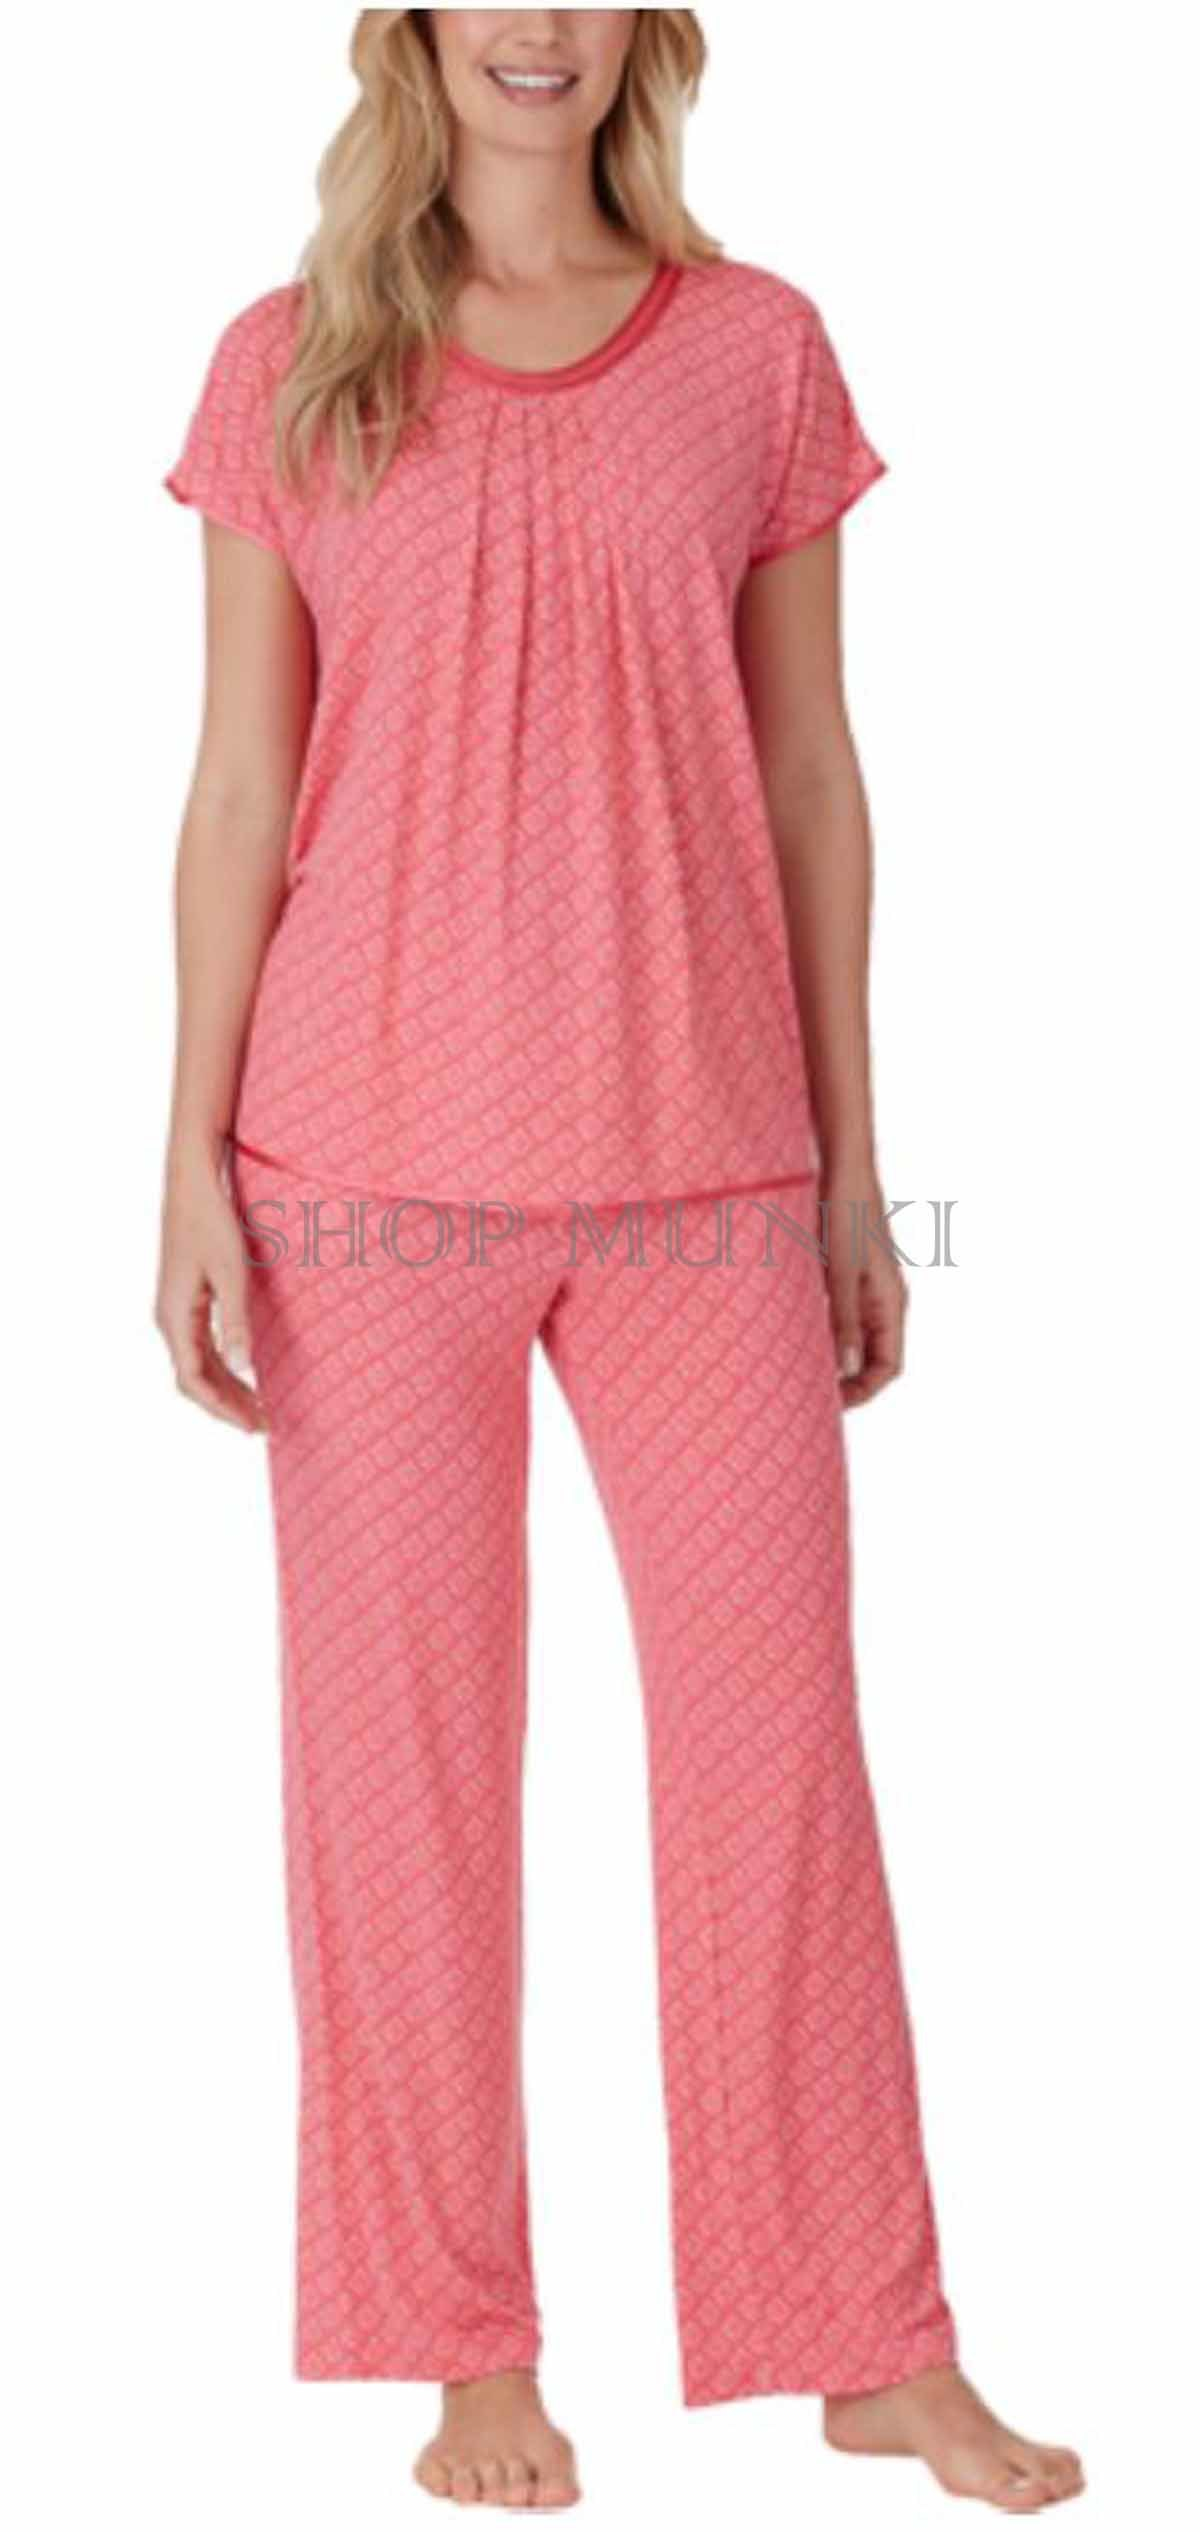 Our affordable women's pajamas and PJ sets include soft, lightweight flannel shirts and bottoms, perfect for a warm night in. Available in a variety of colors and patterns, our sleepwear is so comfortable you'll want to live in it.